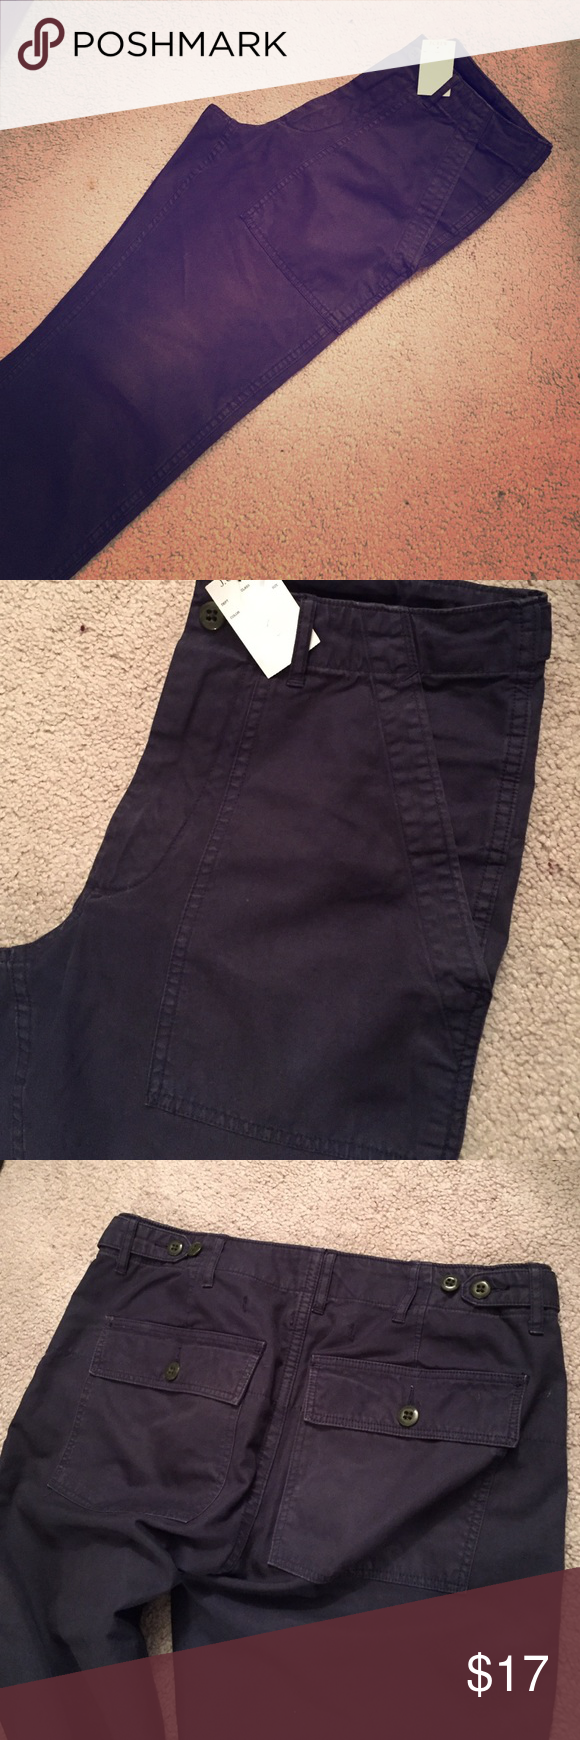 J. Crew utility pants New with tags. Navy blue. Size 30w 30L. Straight leg. Button tab detail at sides or waistband. J. Crew Pants Straight Leg